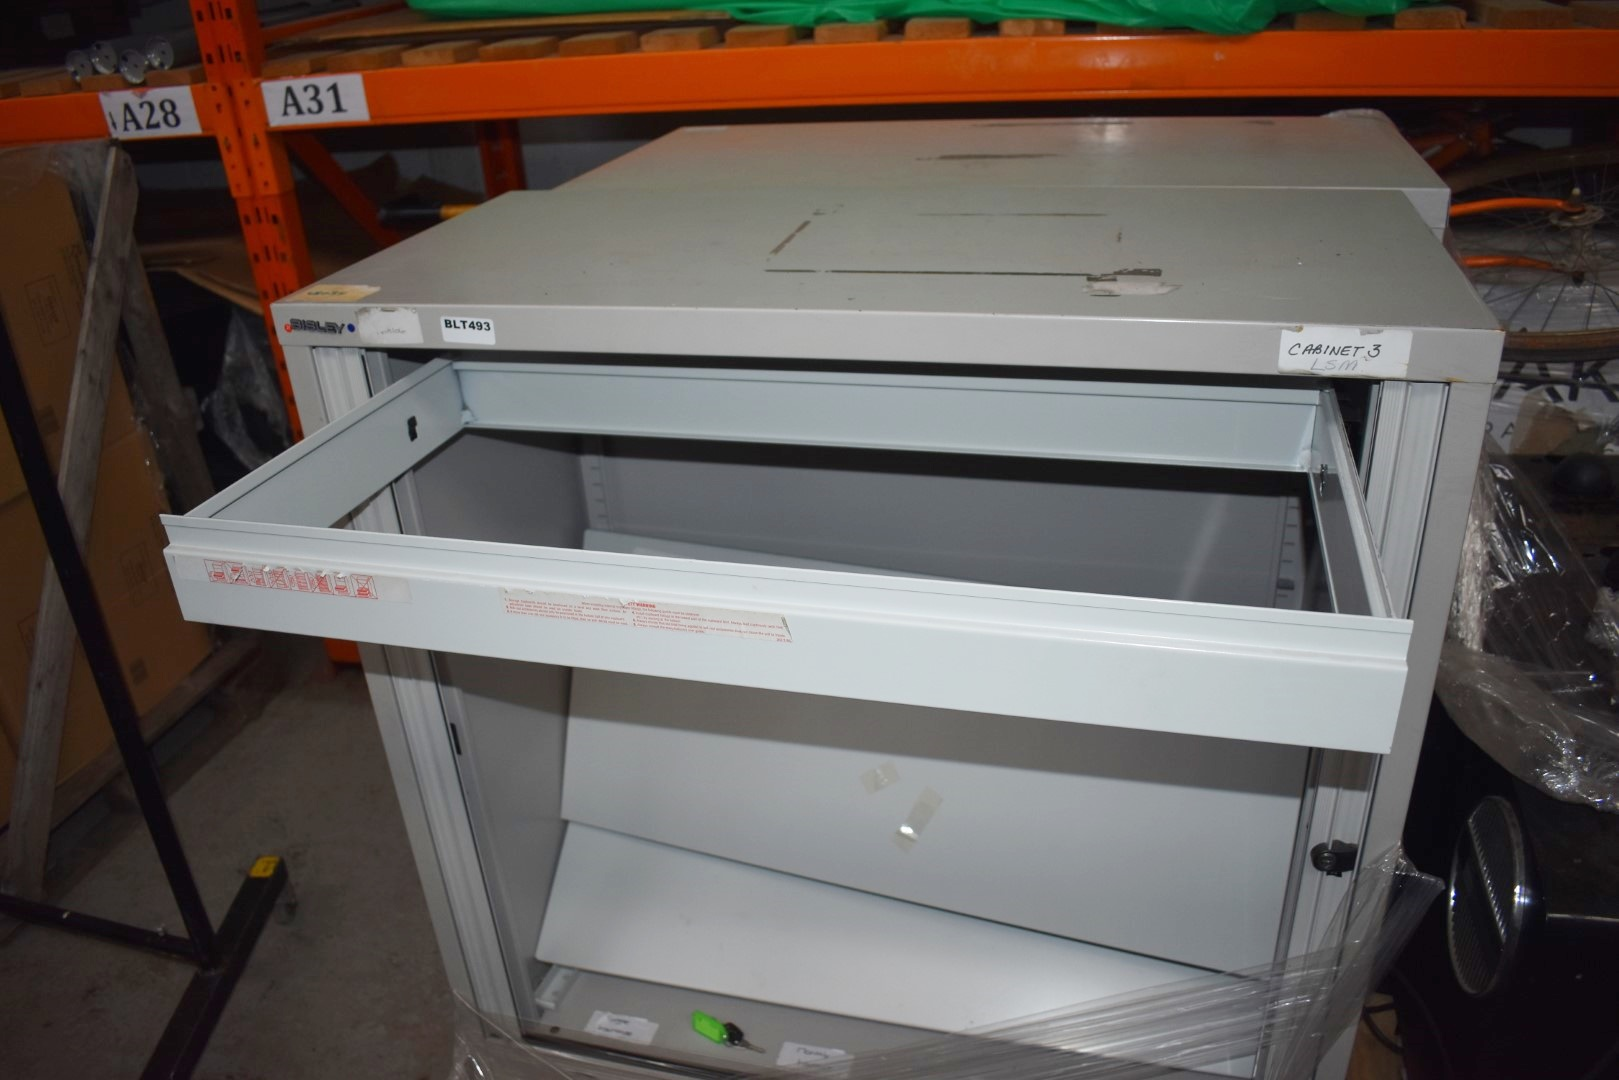 2 x Bisley Sliding Door Office Storage Cabinets With Shelves and File Rail - Keys Included - H101 - Image 5 of 6